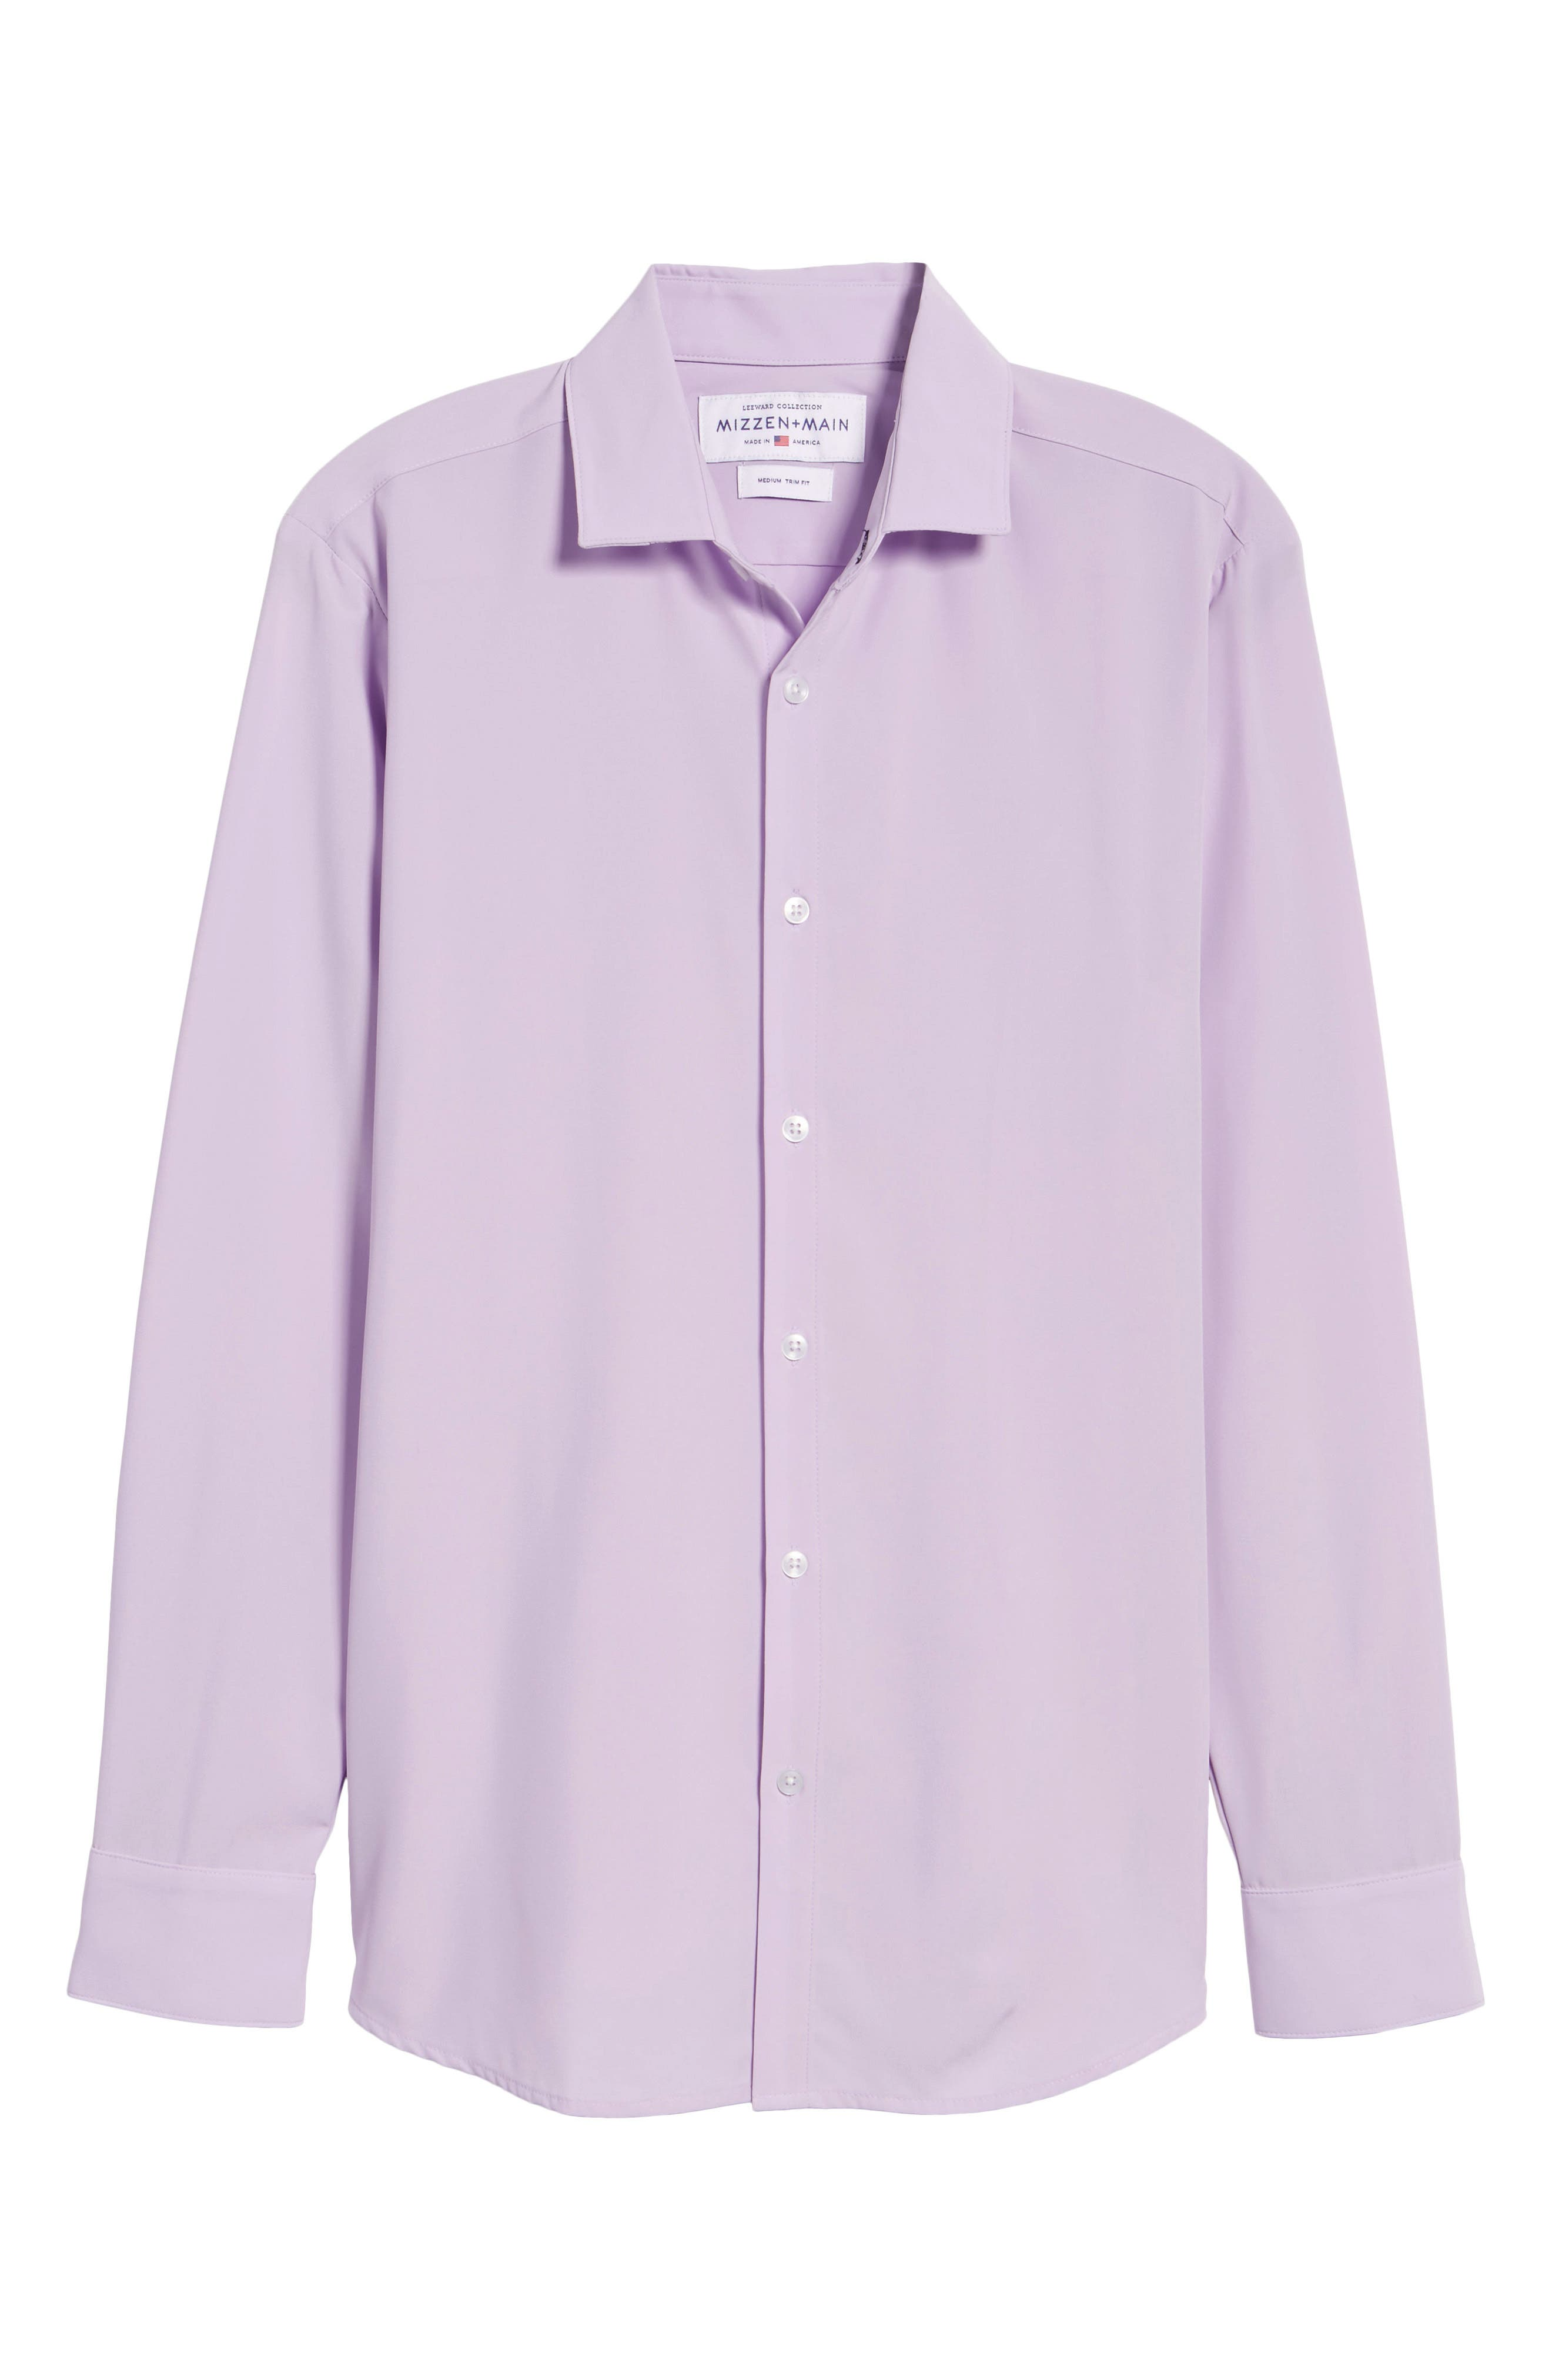 Henderson Performance Sport Shirt,                             Alternate thumbnail 6, color,                             Purple